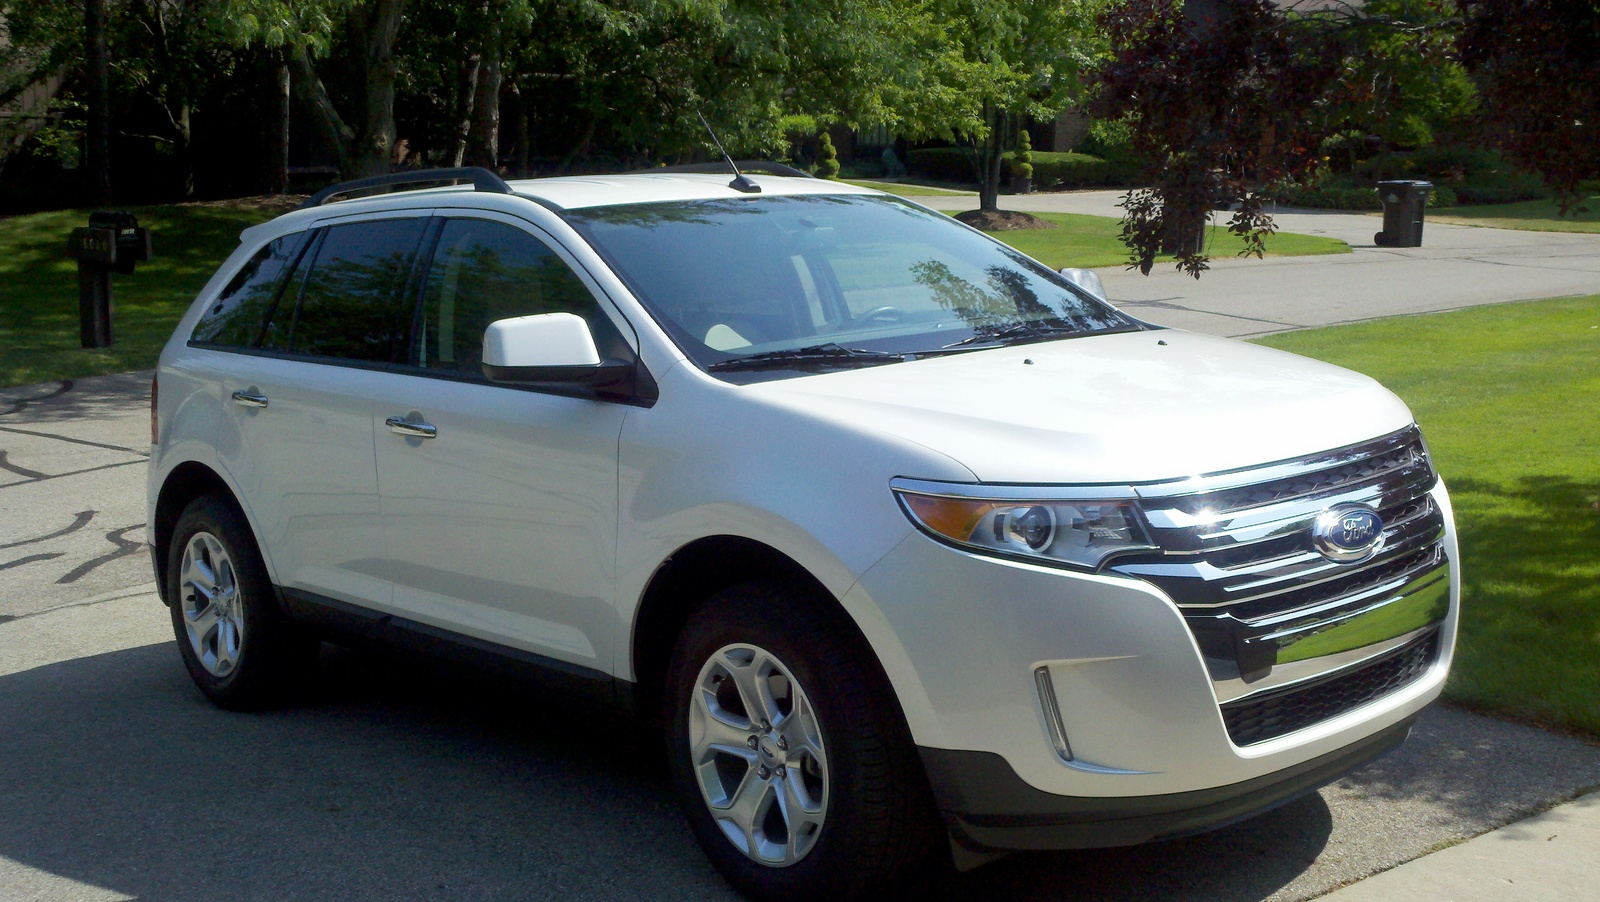 2014 Ford Edge Se >> 2011 Ford Edge - Pictures - CarGurus